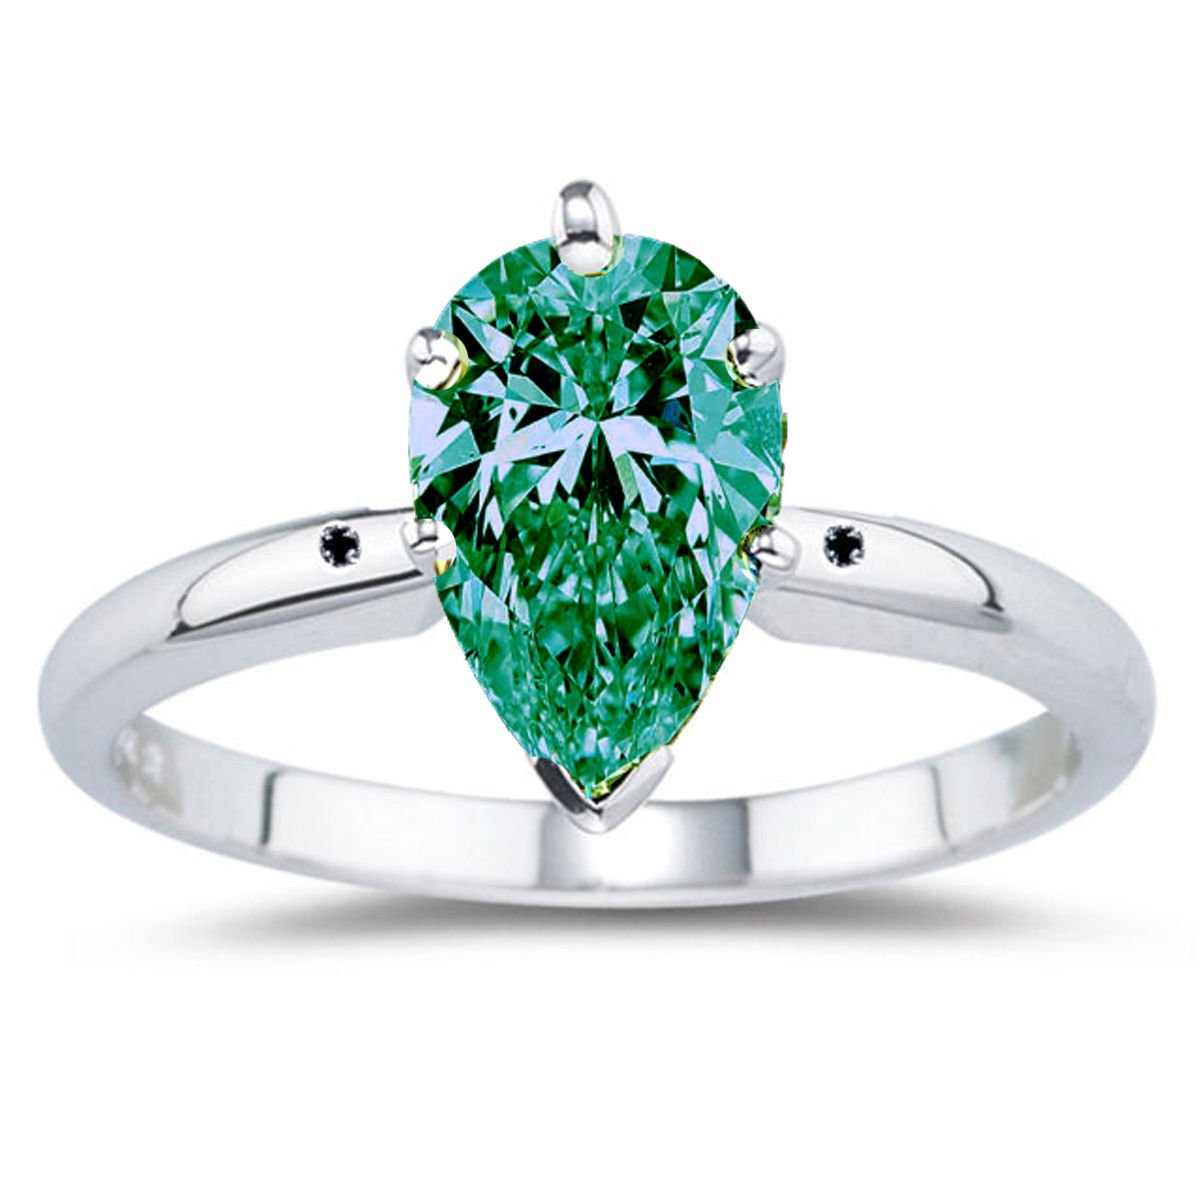 RINGJEWEL 7.81 ct I2 Pear Moissanite Solitaire Engagement Silver Plated Ring Green Blue Color Size 7